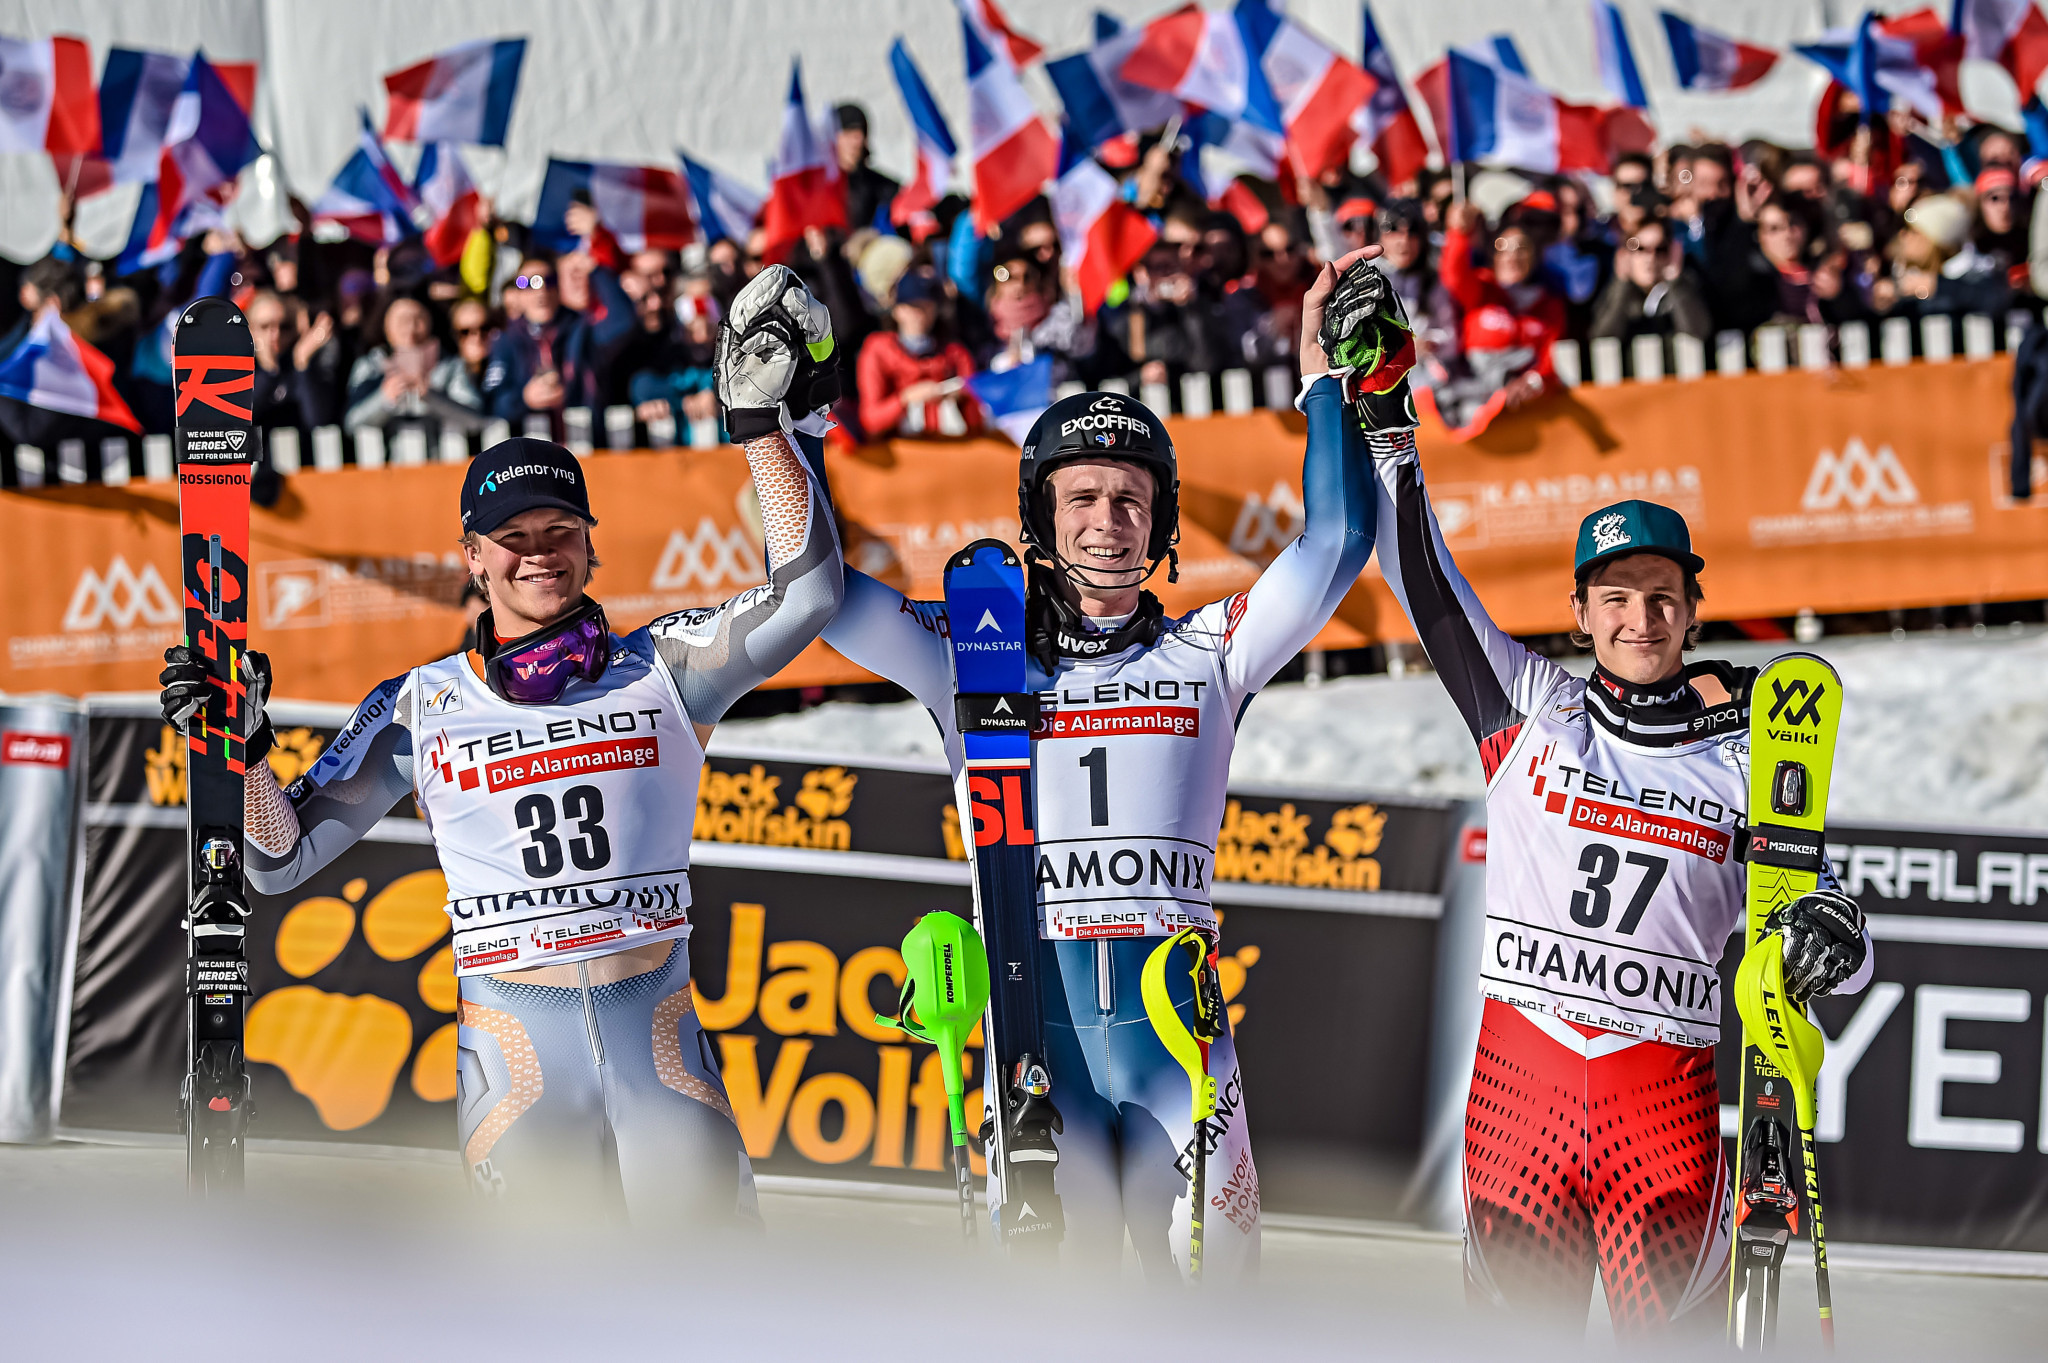 Frenchman Noël takes home slalom victory at FIS Alpine Ski World Cup